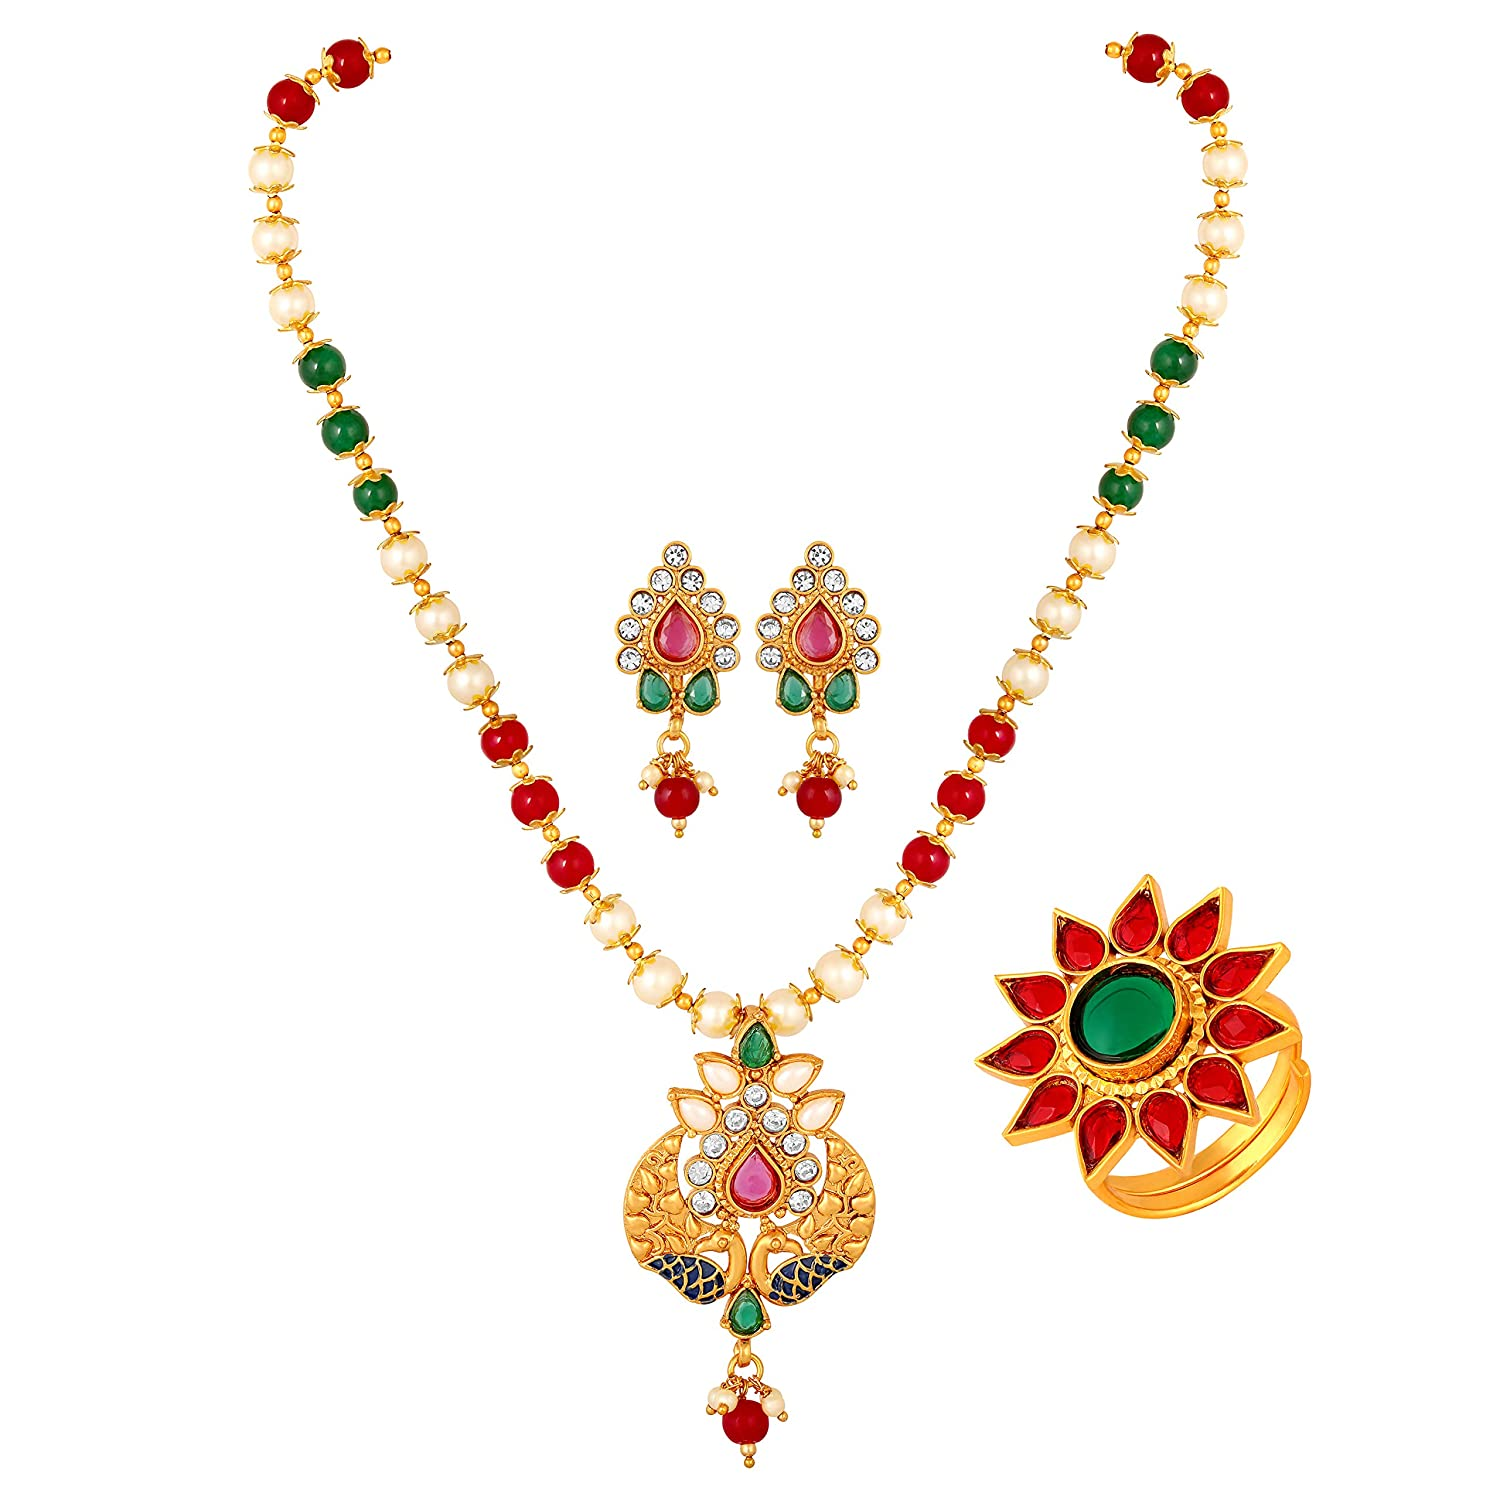 Buy Induspider Fashion Jewelry Gold Plated Ruby Fancy Pendant